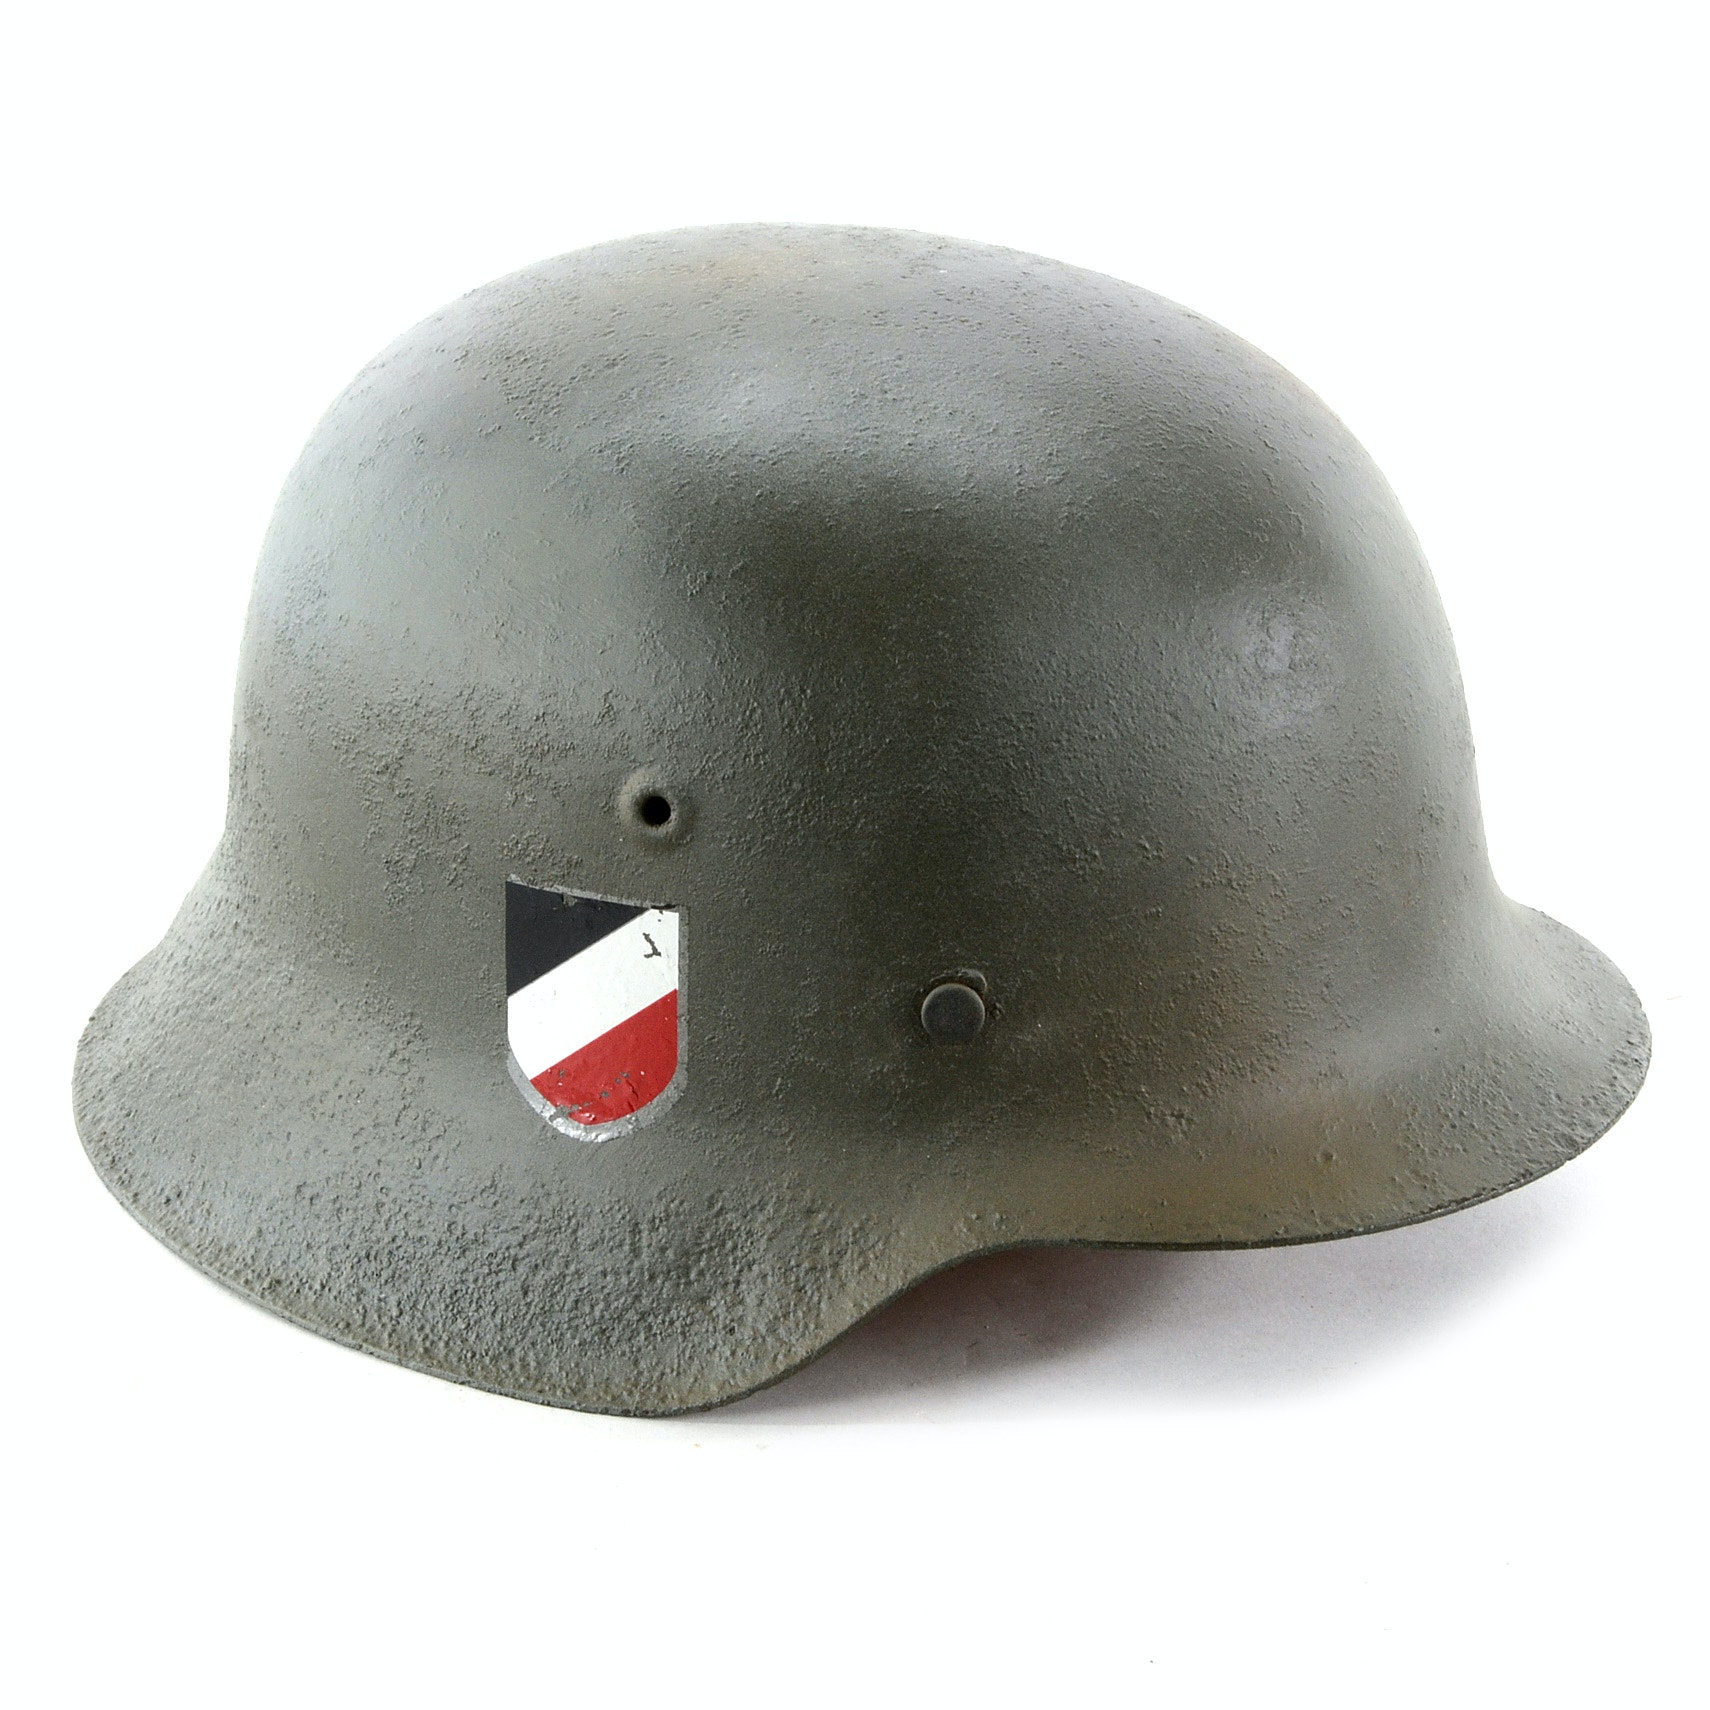 Reproduction World War Two German Helmet